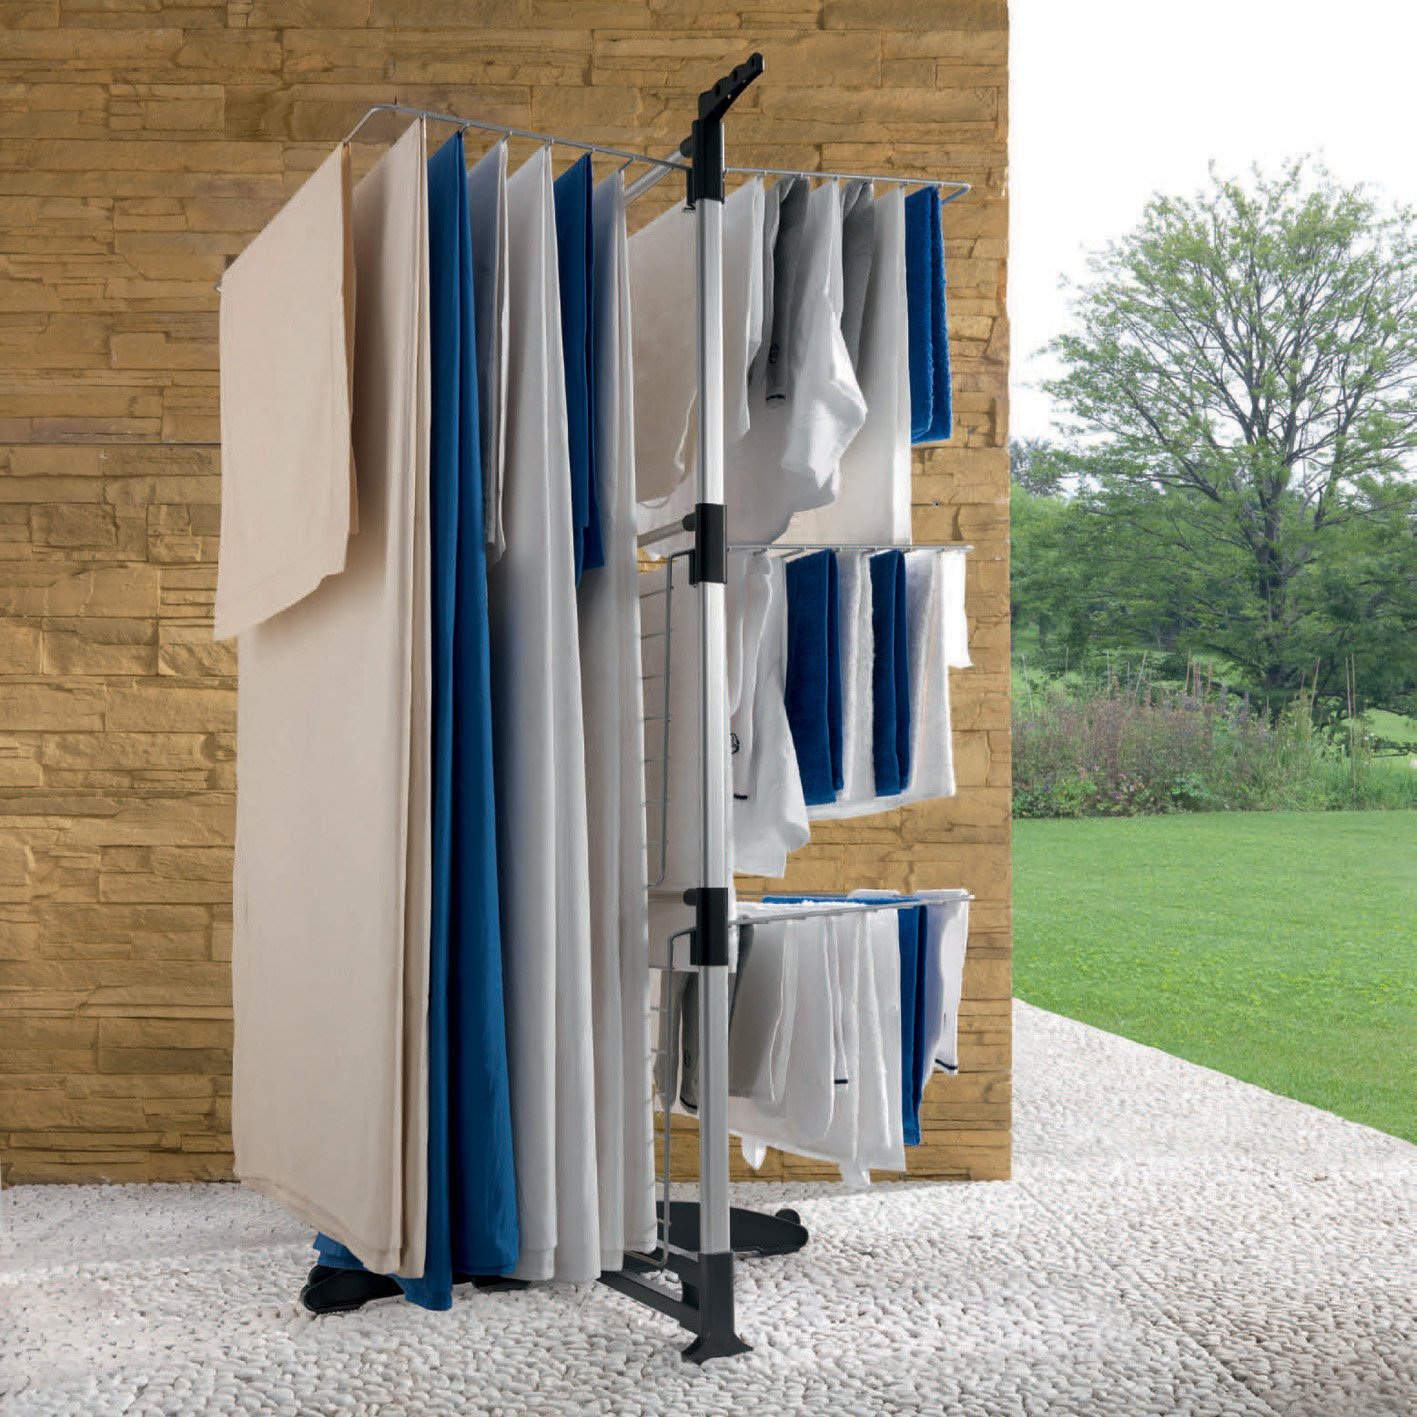 Metaltex 40 M Ciclone 3 Tier Independently Folding Shelves Vertical Laundry